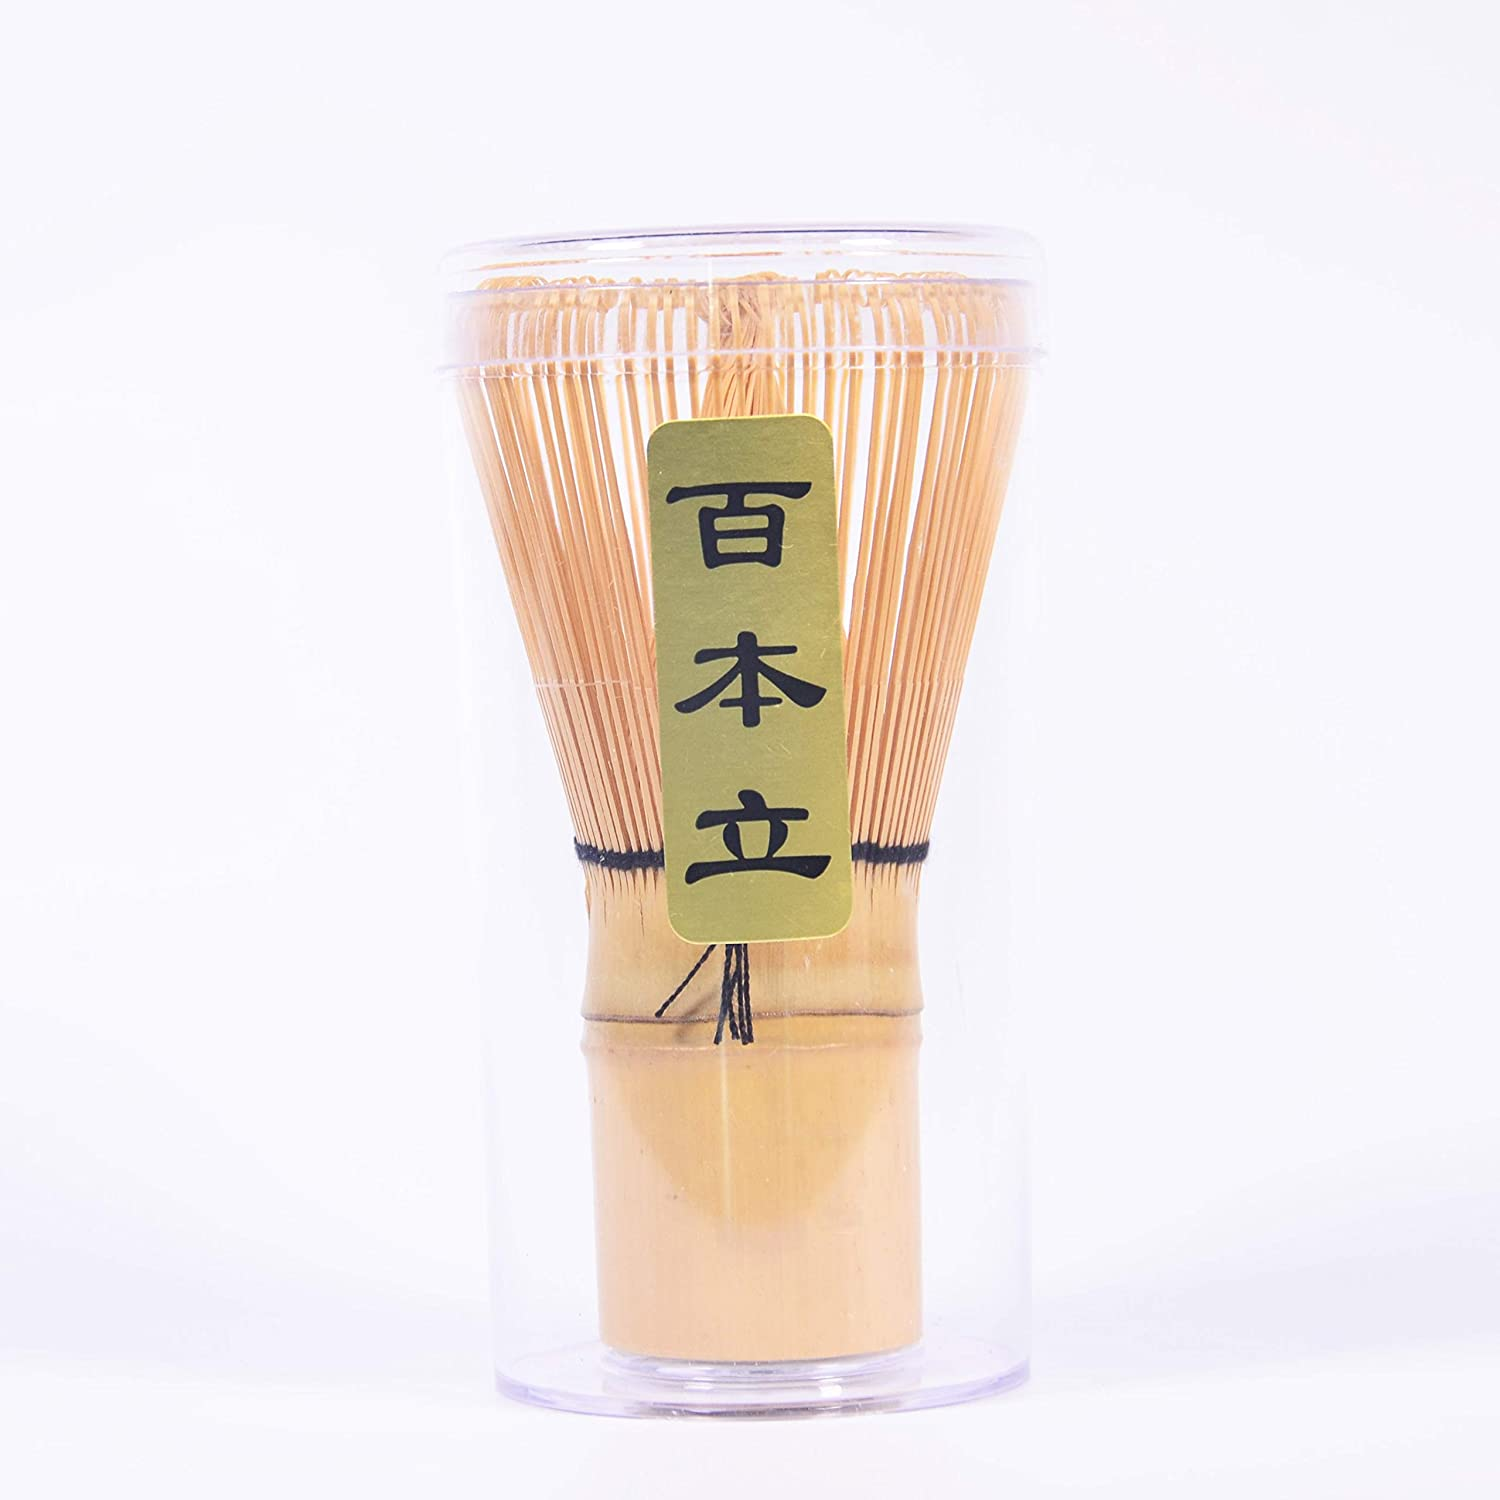 Detroit Mall Bamboo Whisk Matcha Ranking integrated 1st place for